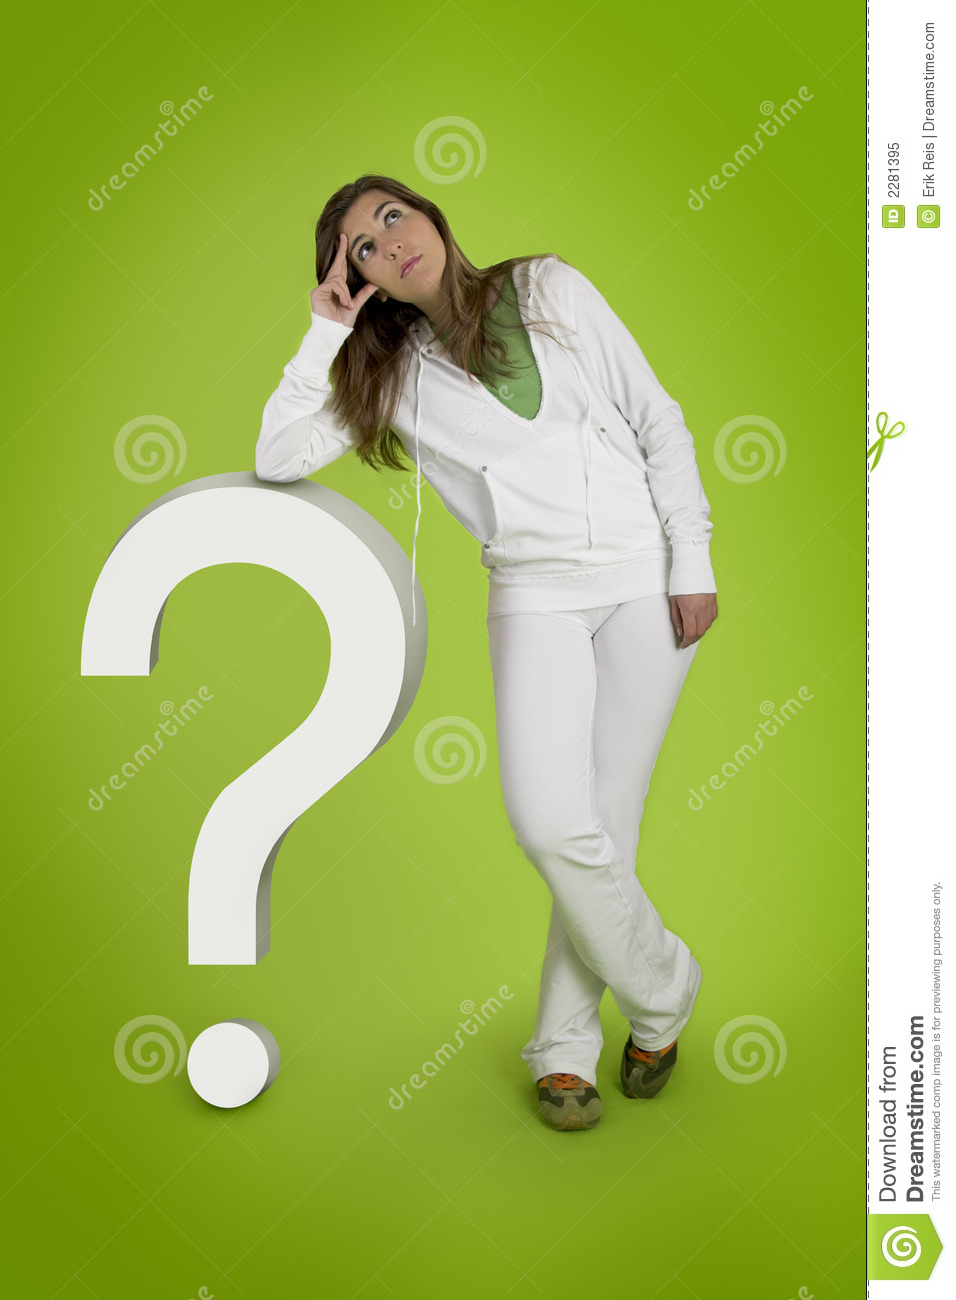 woman contemplating questions royalty free stock photo